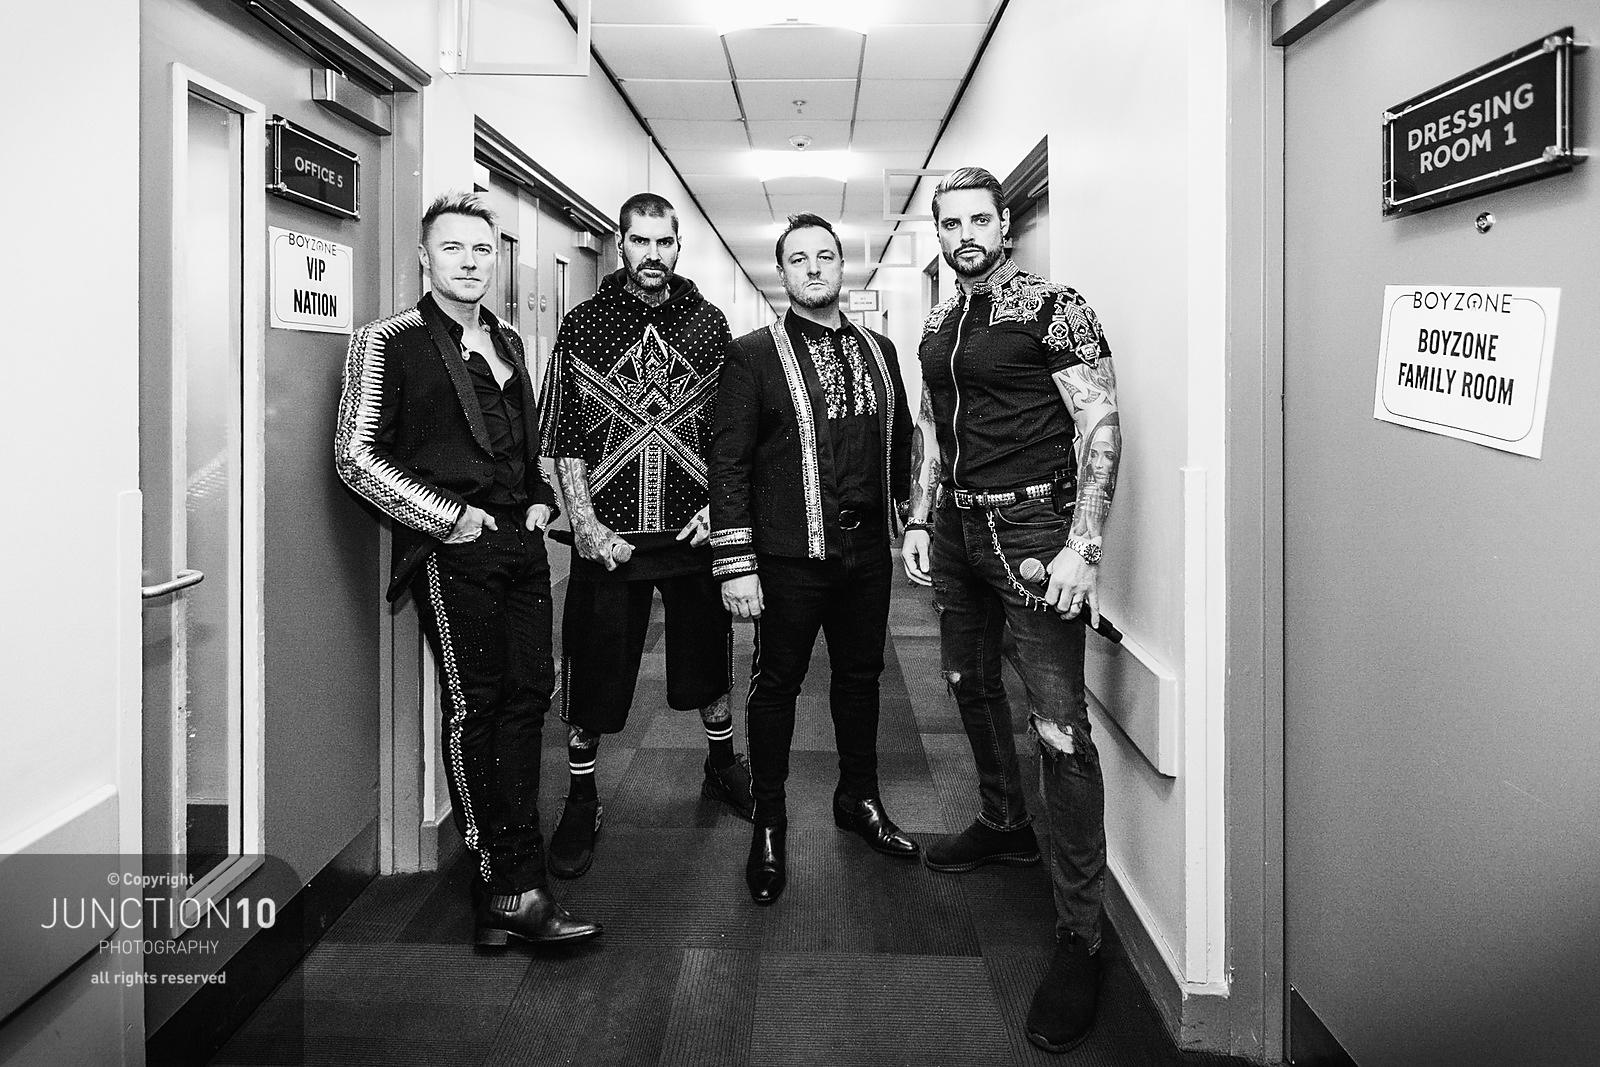 Boyzone Thank You & Goodnight concert at Resorts World Arena, Birmingham, United Kingdom - 08 Feb 2019